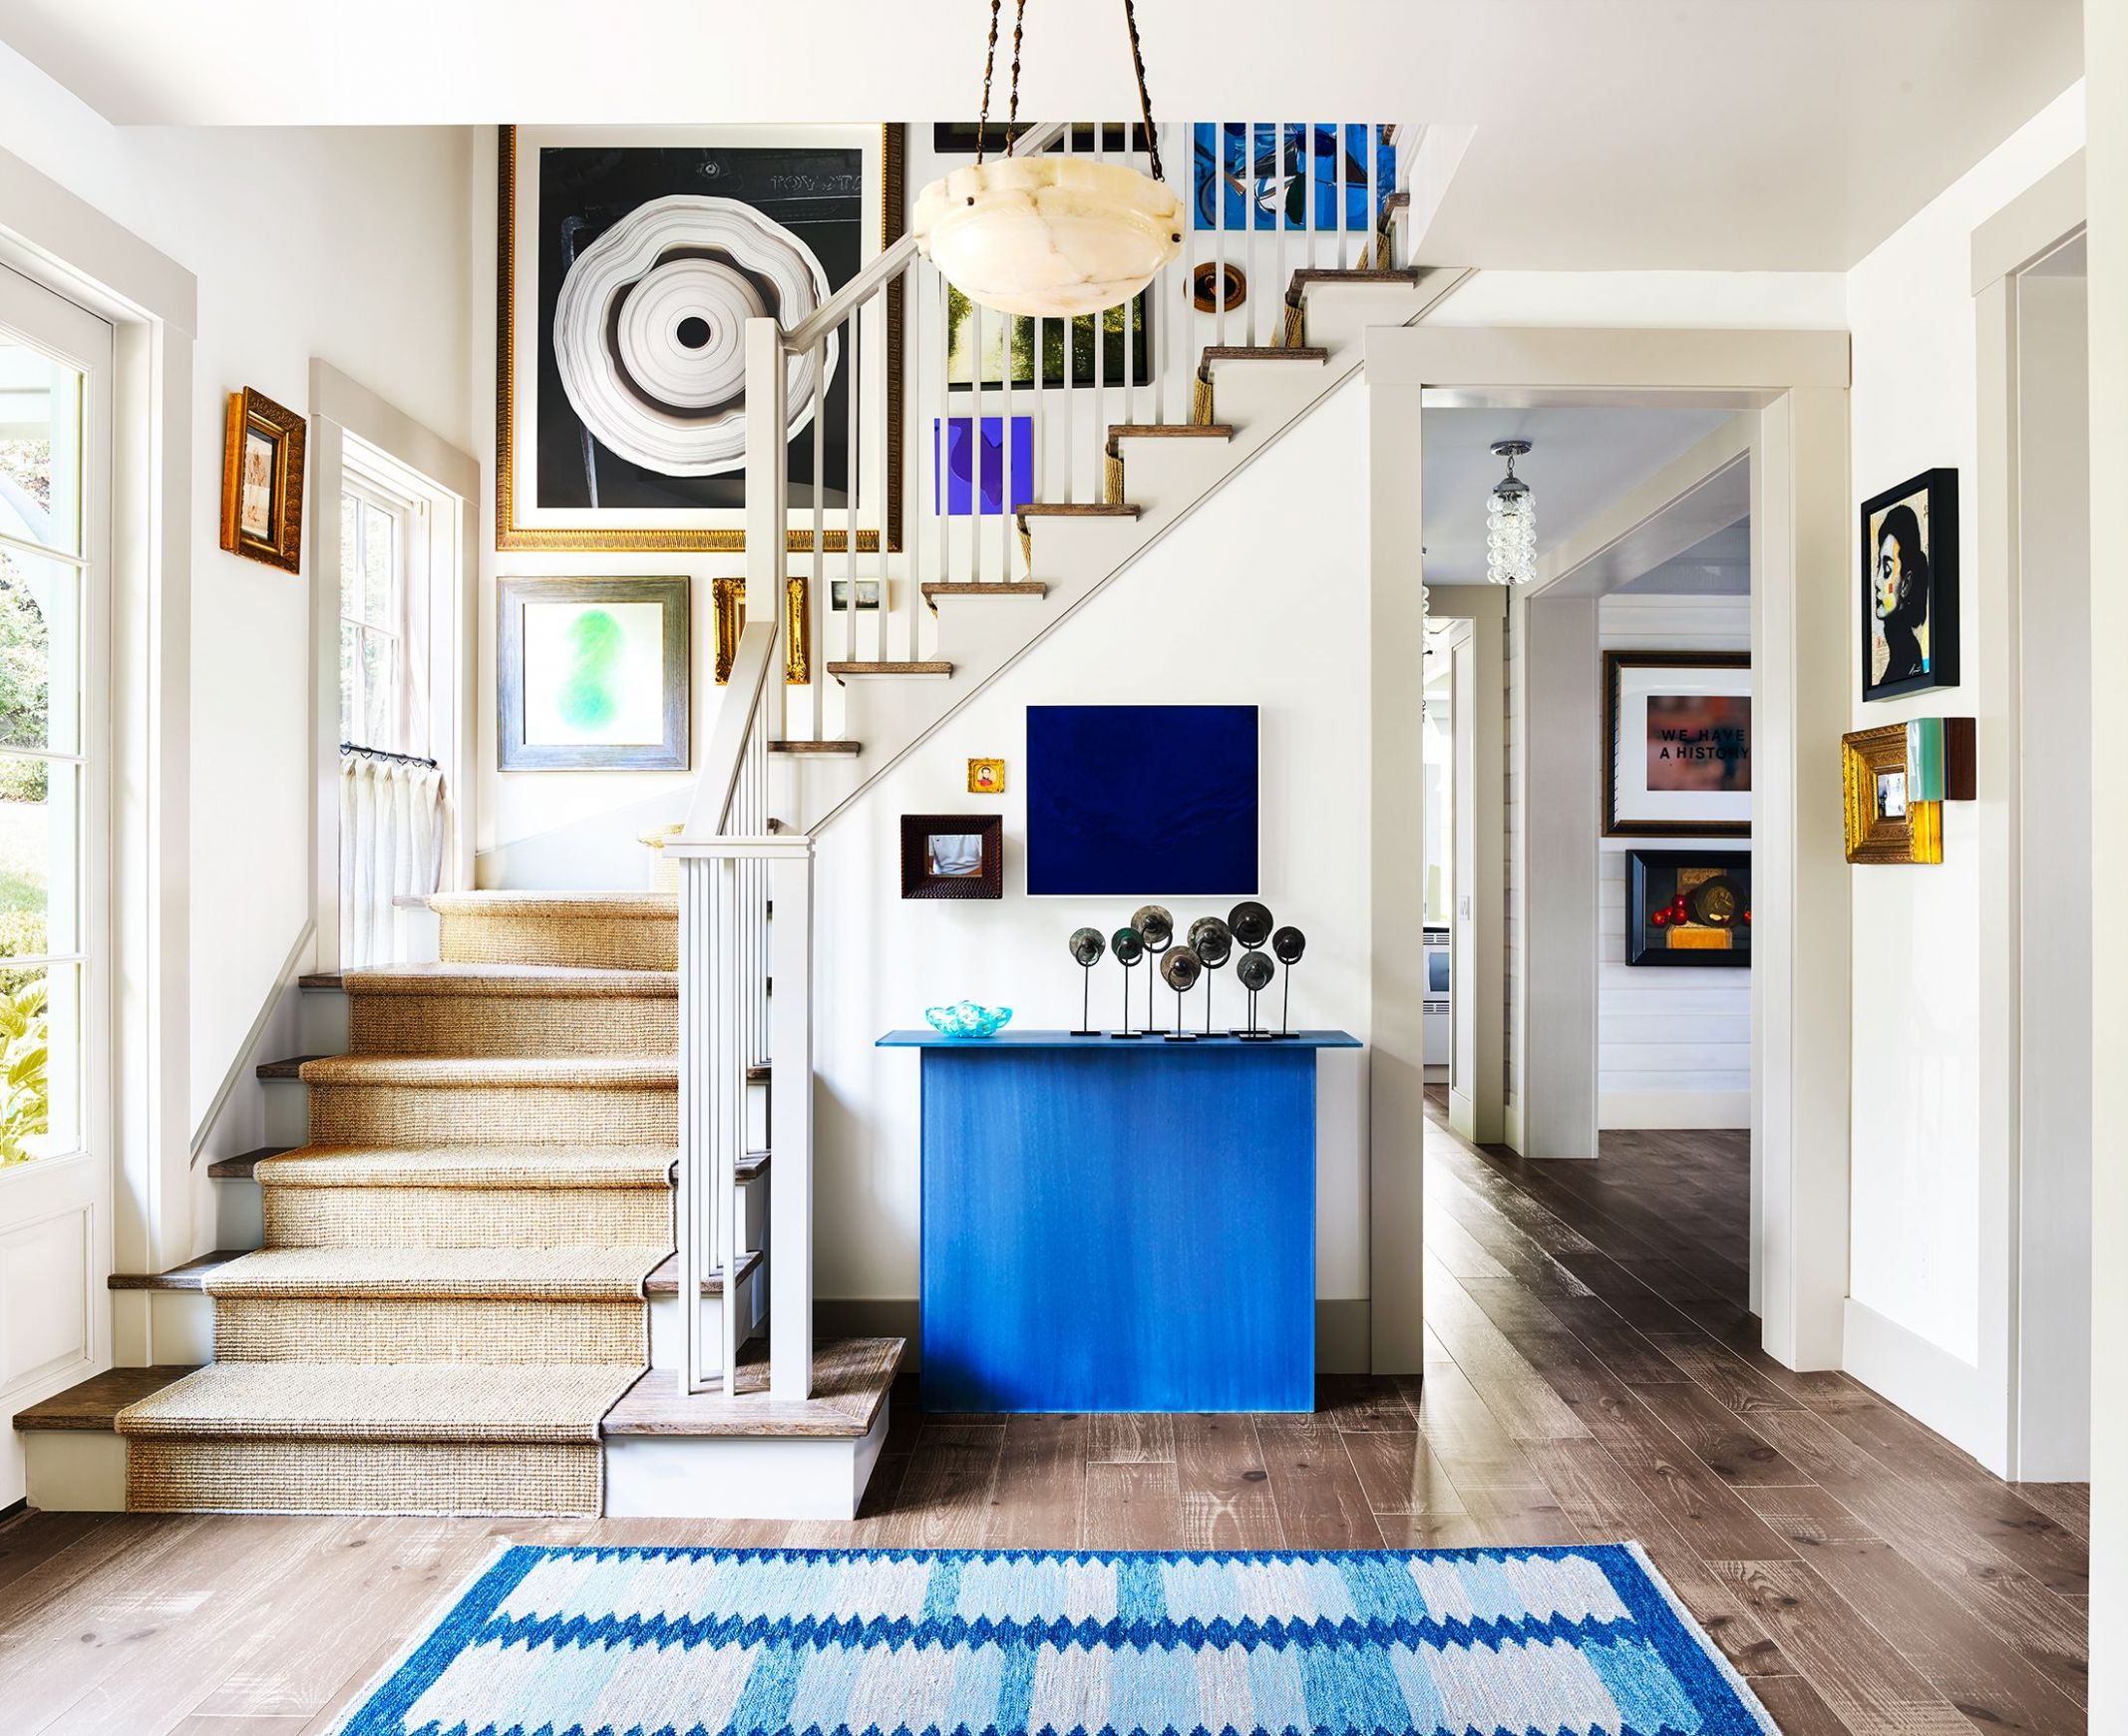 12 Best Wall Art Ideas For Every Room - Cool Wall Decor And Prints - wall decor ideas next